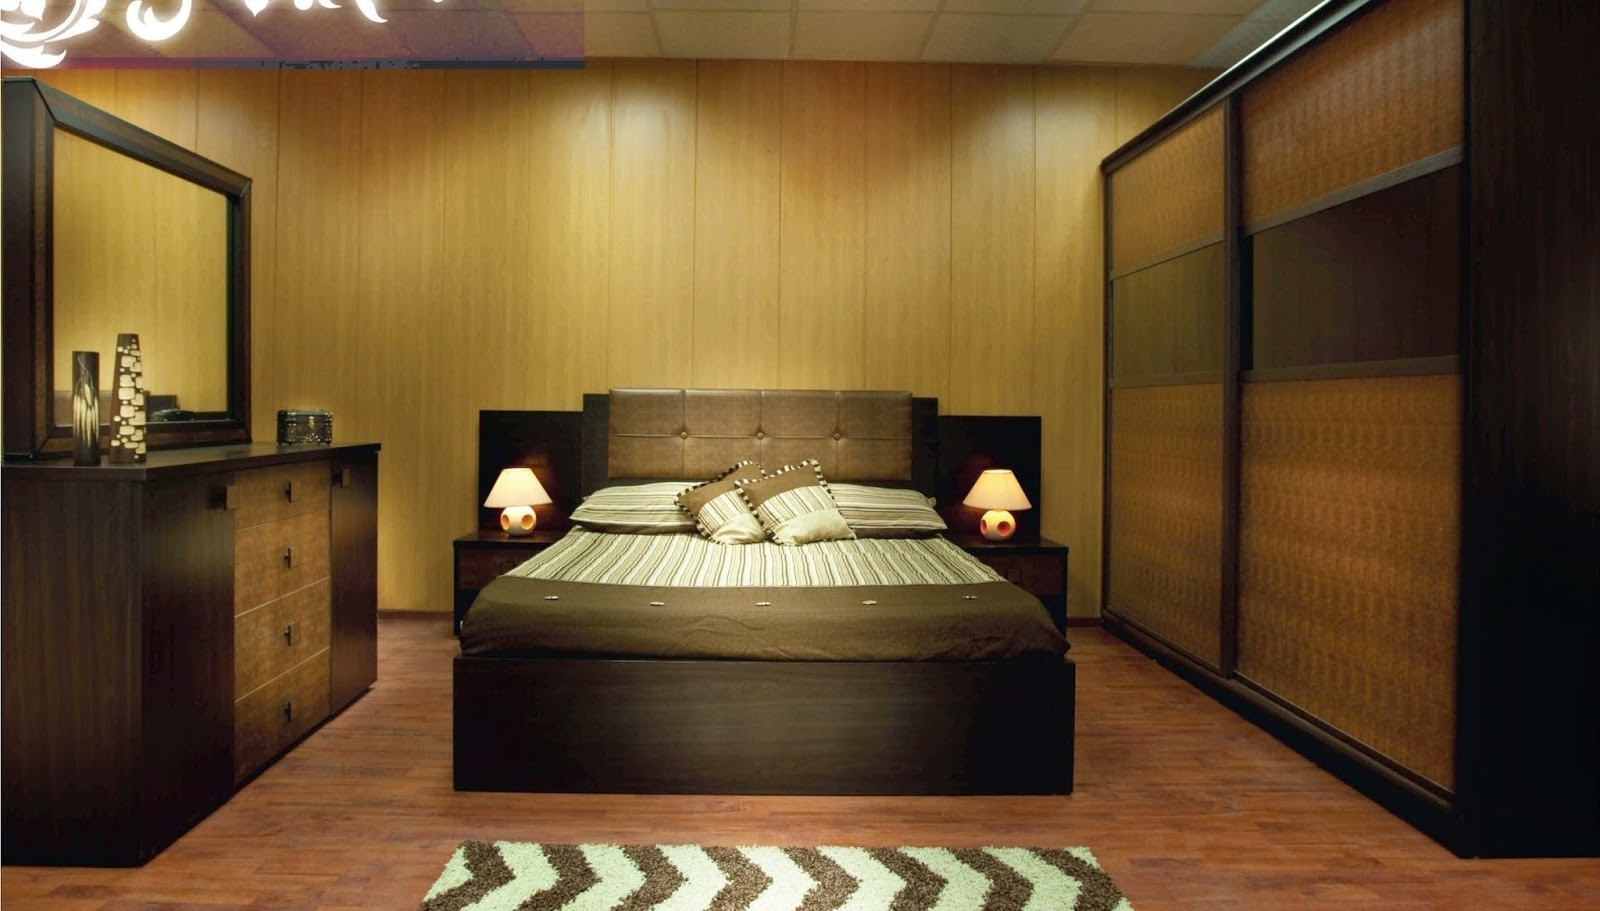 The Modern Bedroom Design in 2014